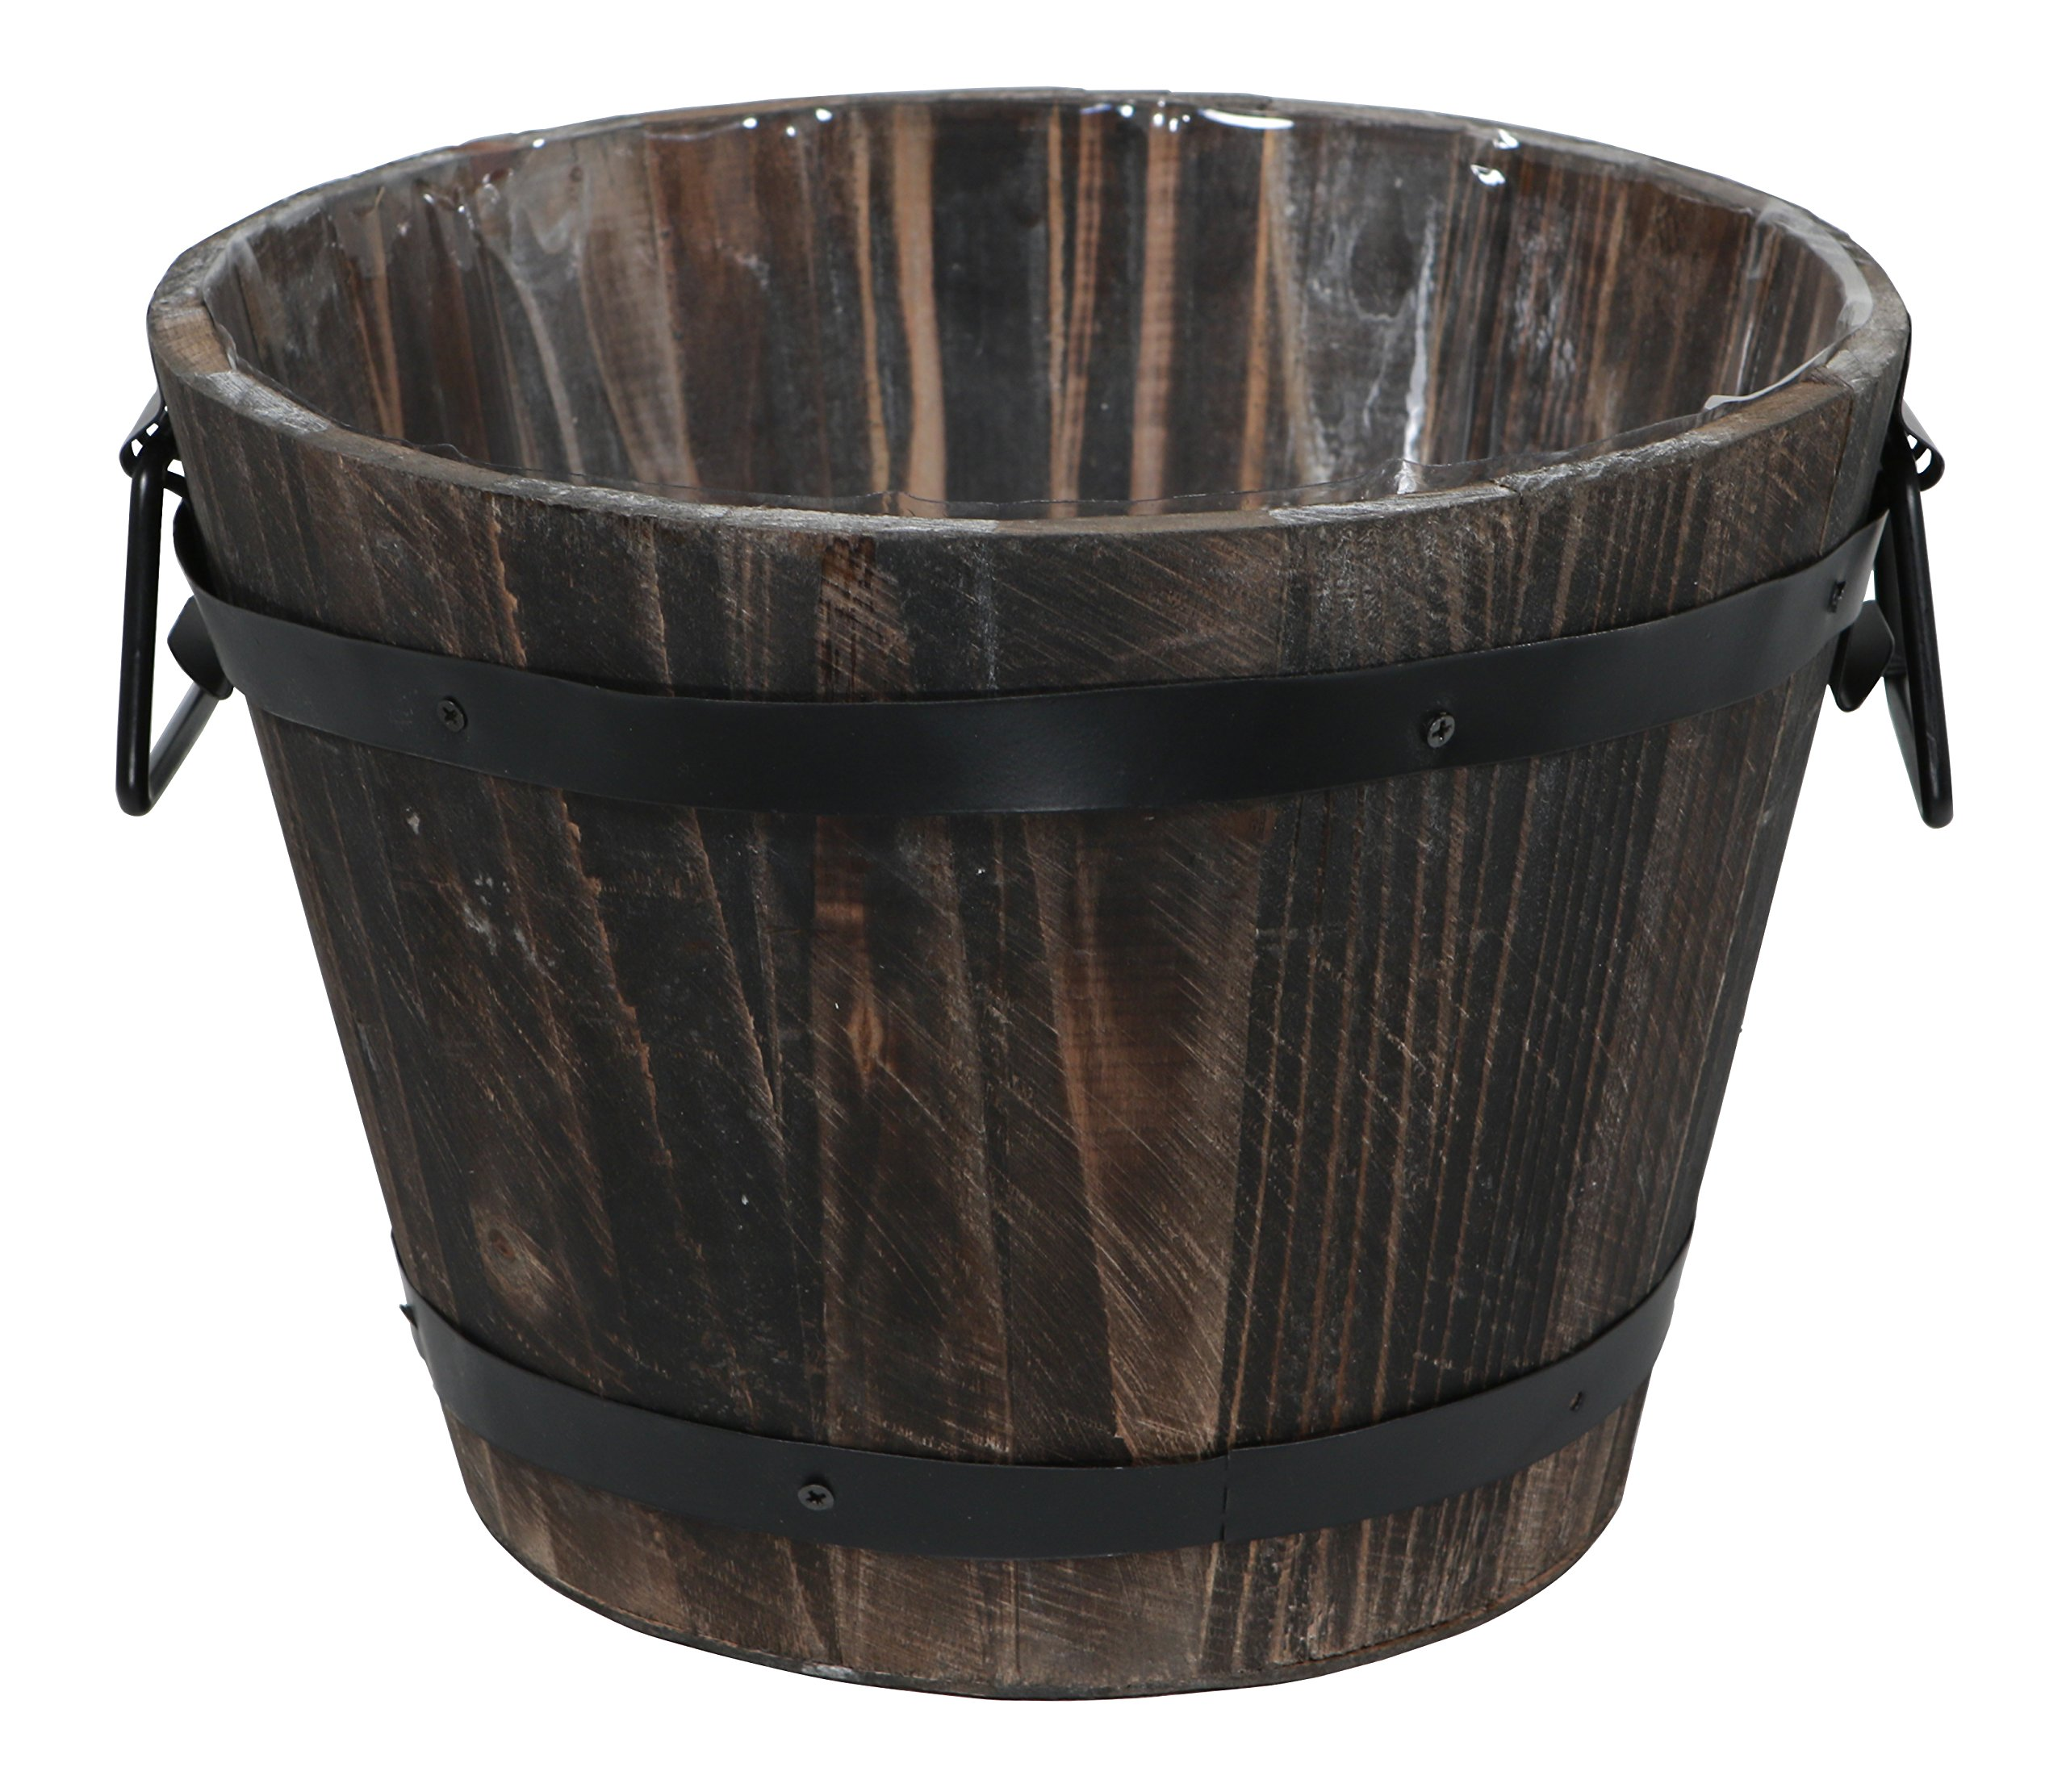 Cheung's FP-3768 Wooden Bucket with Side Handles